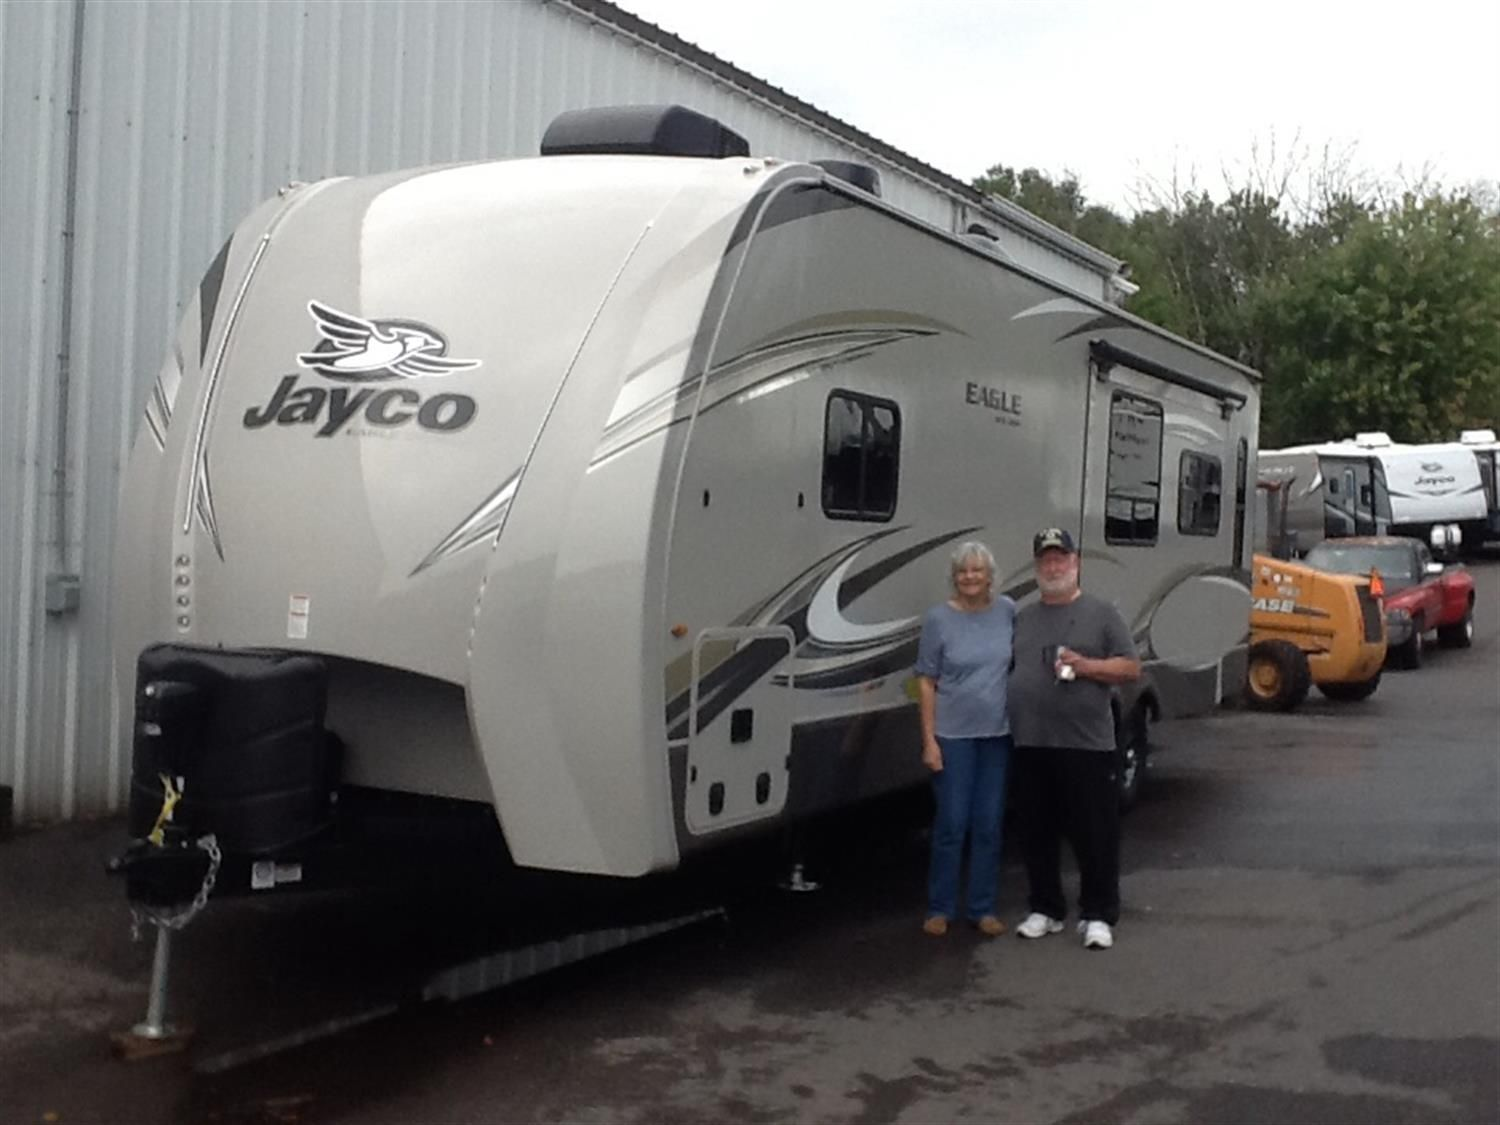 John And Sally We Hope That Your New 2020 Jayco Eagle Takes You On Amazing Journeys Near And Far Enjoy Your New Vehicle Recreational Vehicles Vehicles Jayco